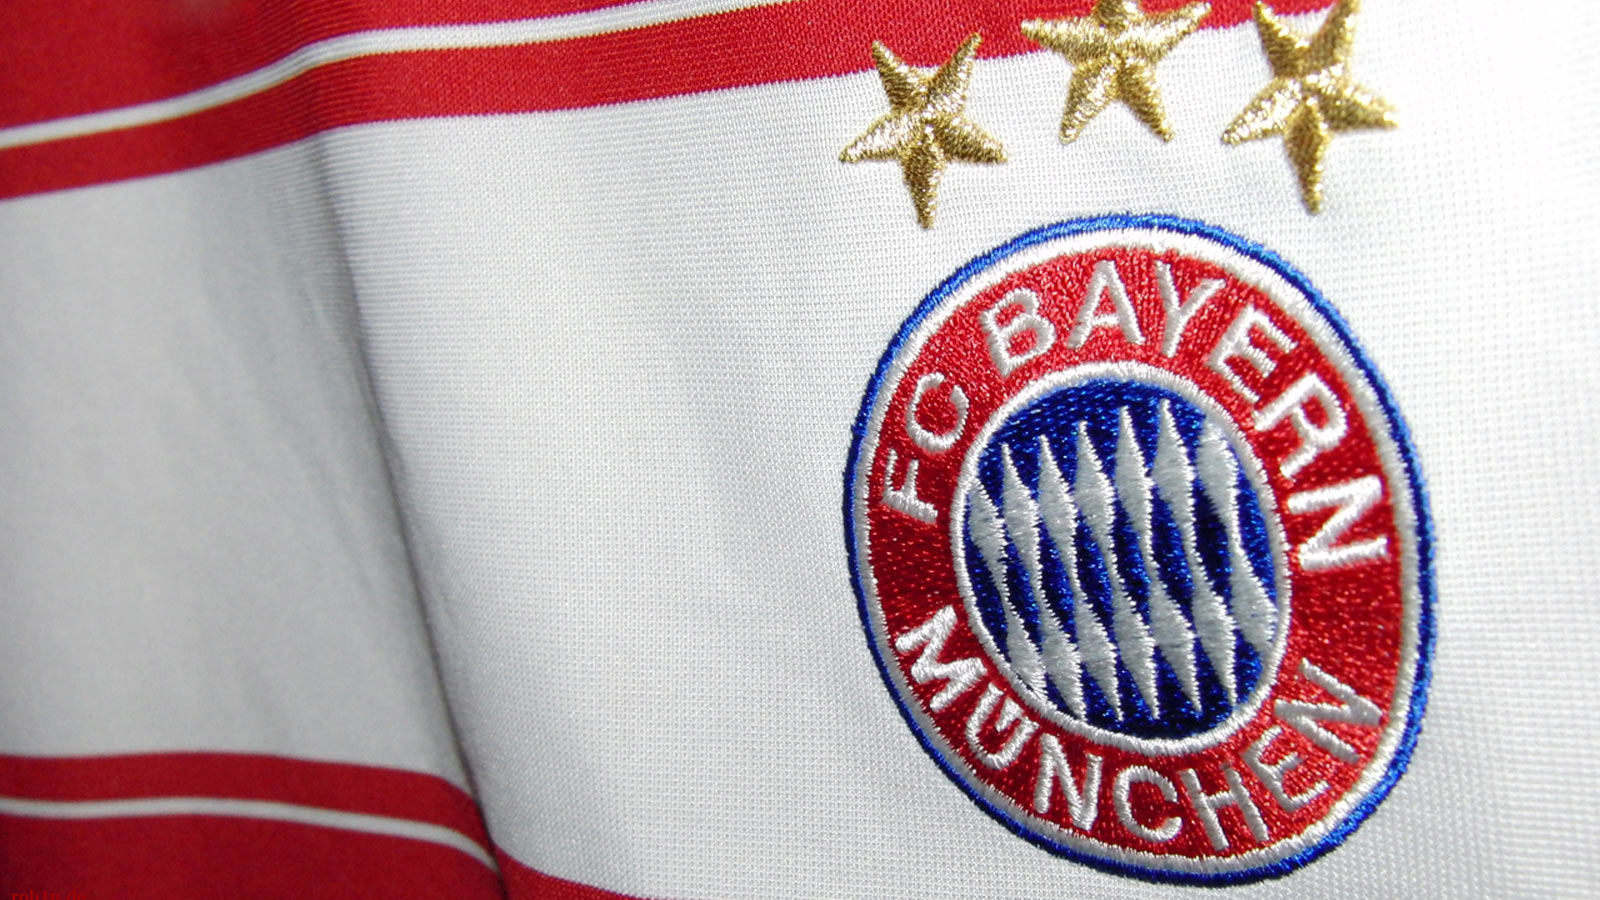 Bayern Munich Wallpaper HD Logo